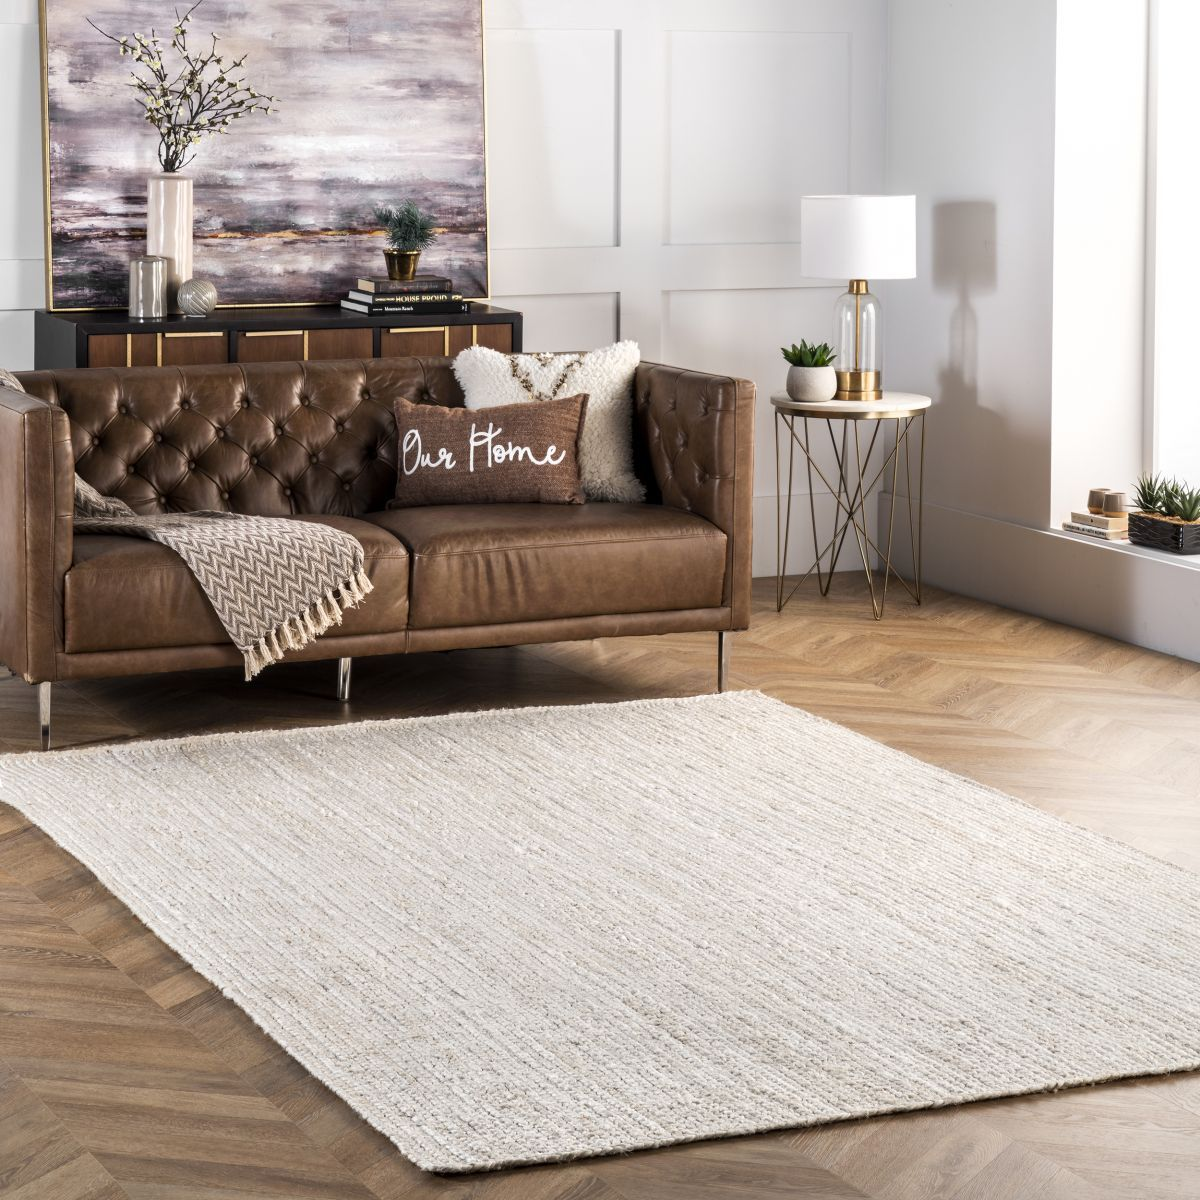 Maui Jute Braided Natural Rug In 2020 Boho Living Room White Rug Jute Rug